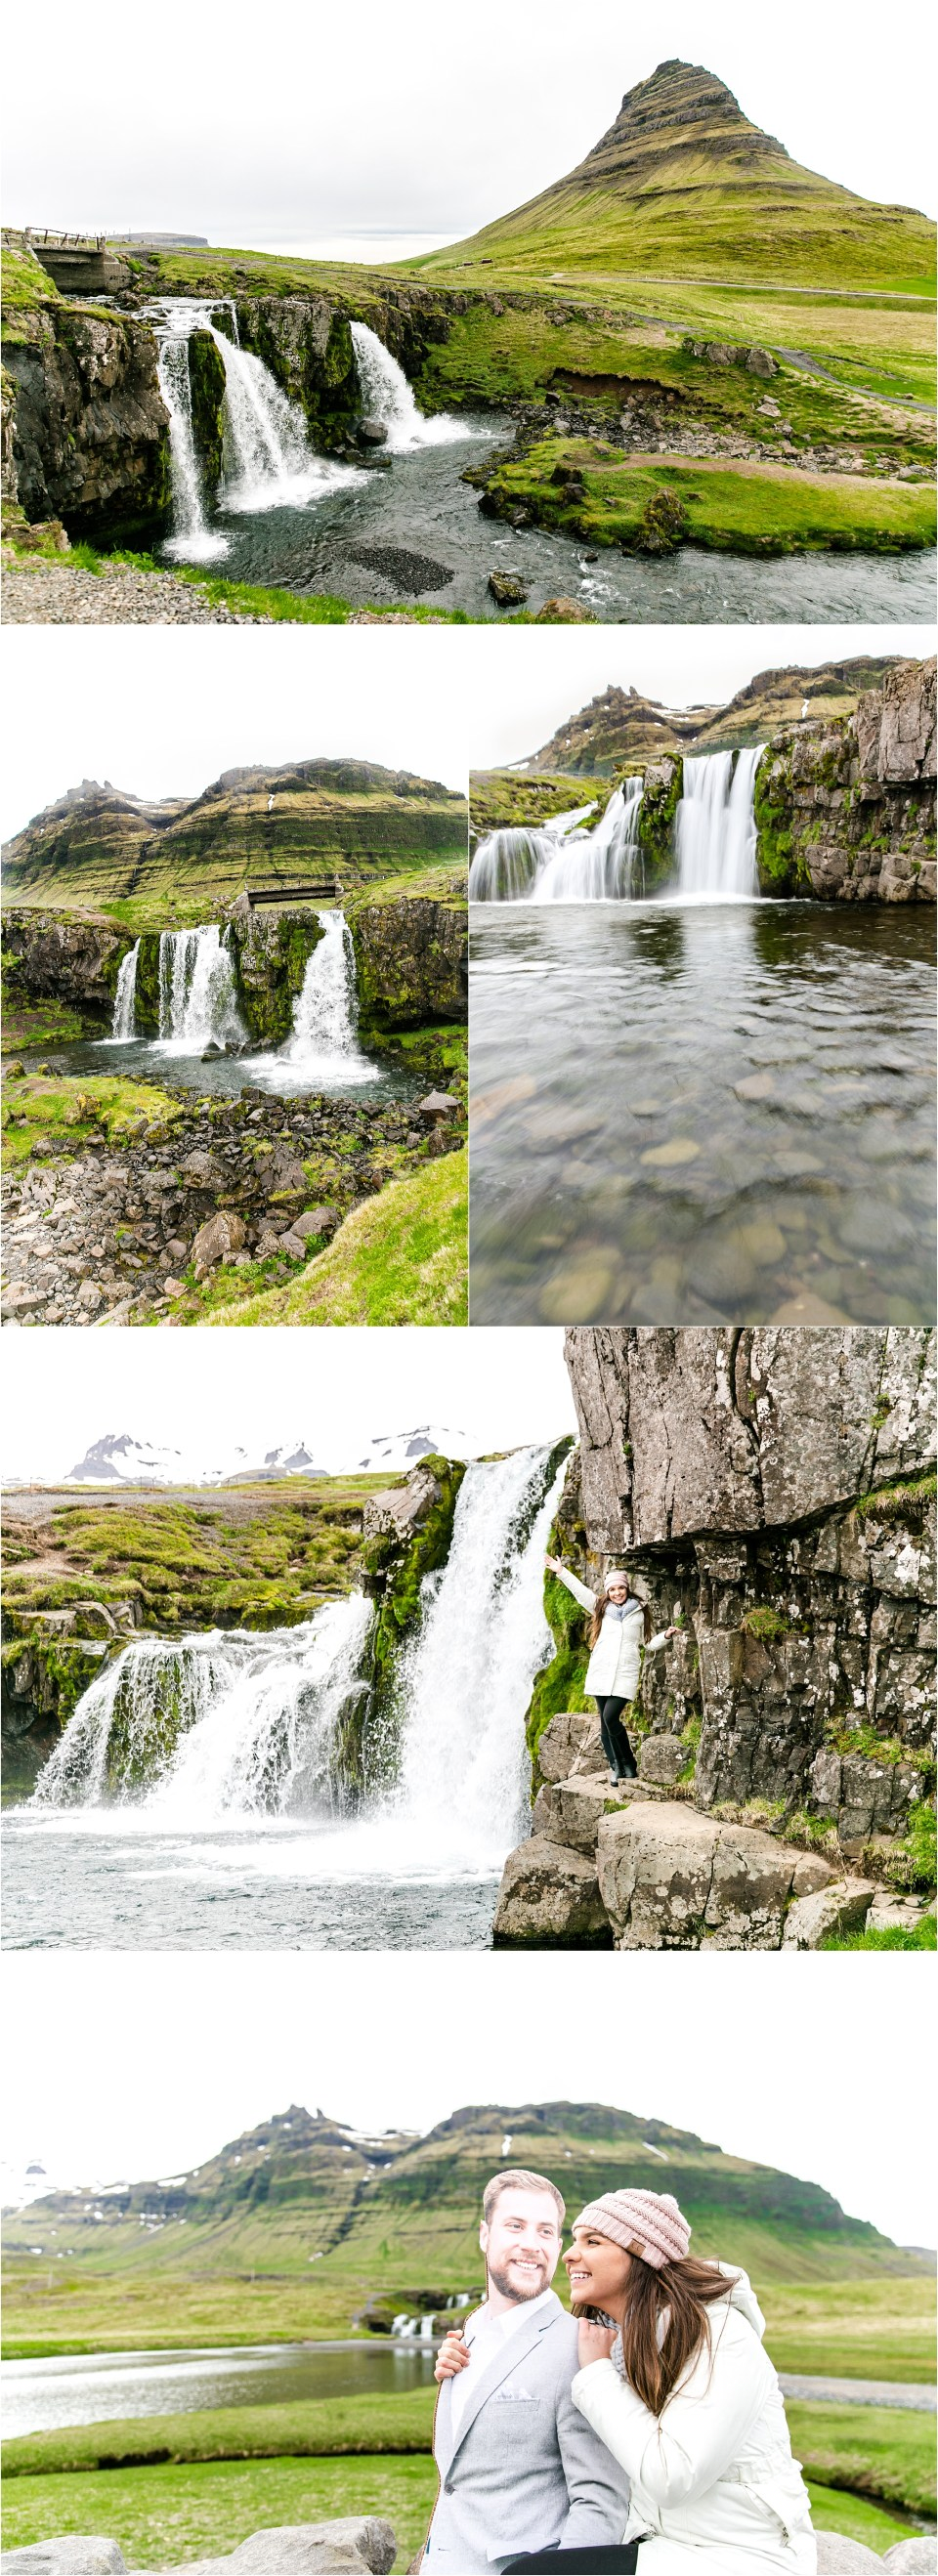 Iceland Ring Road Travels Reykjavik churches waterfalls